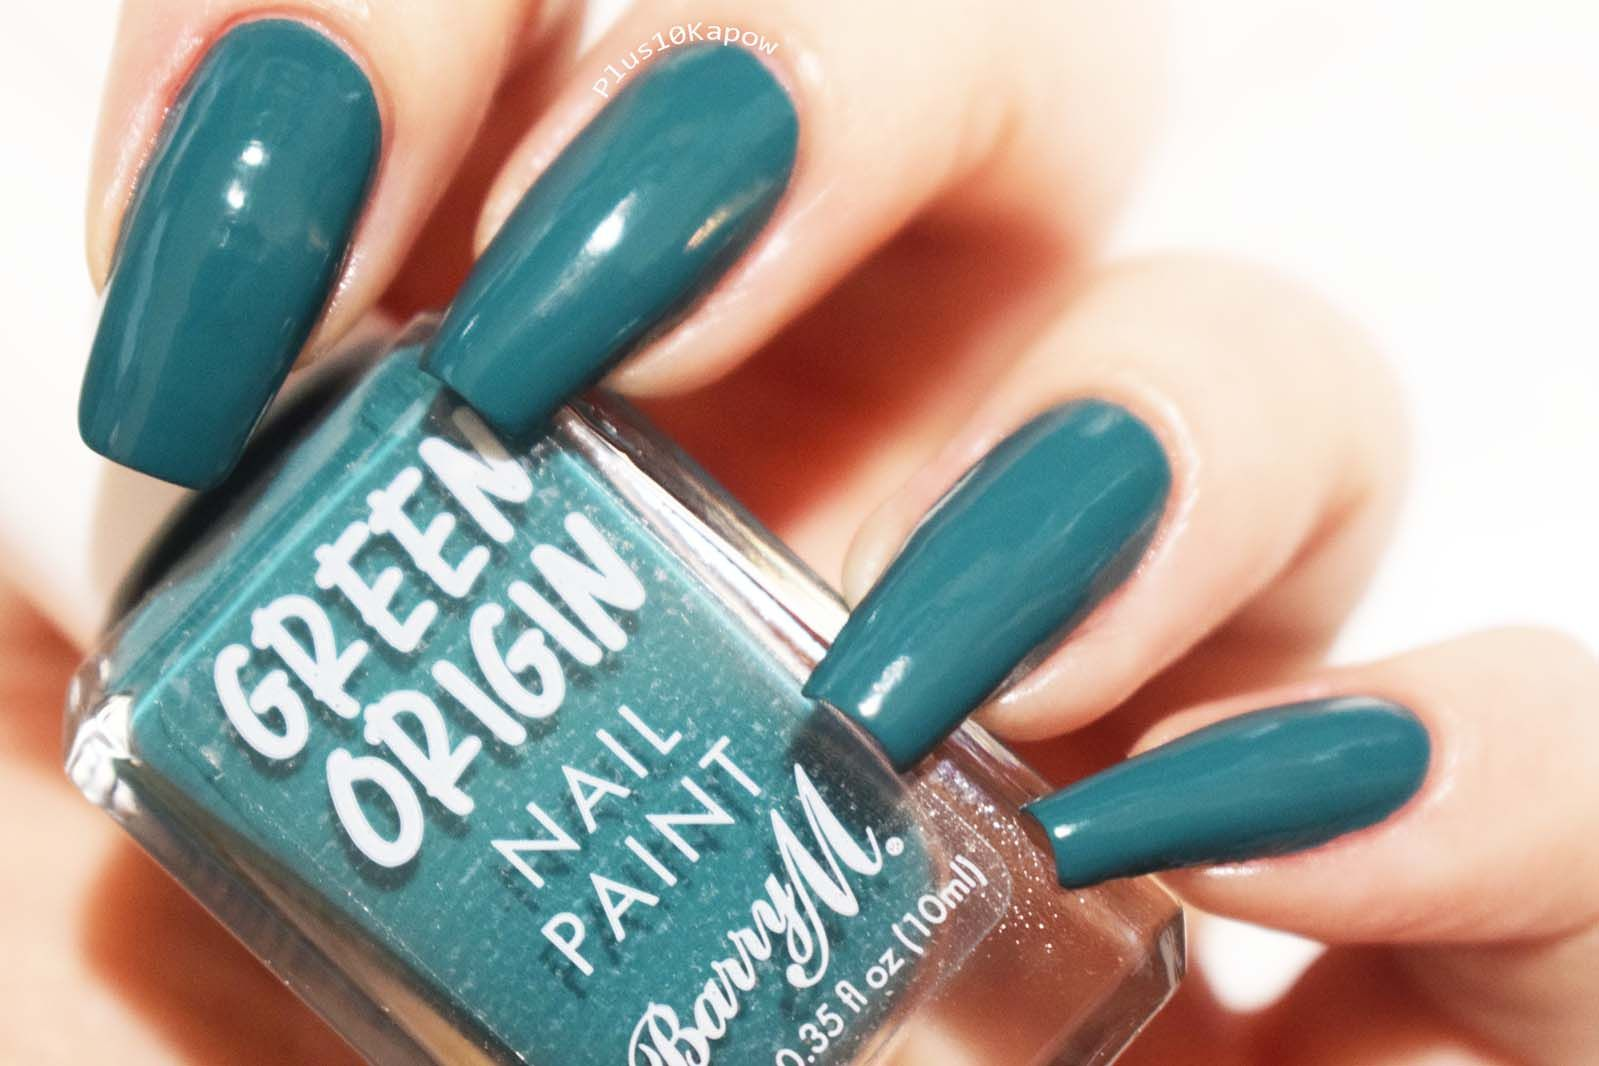 Barry M Green Origin Collection Swatches Plus10Kapow in